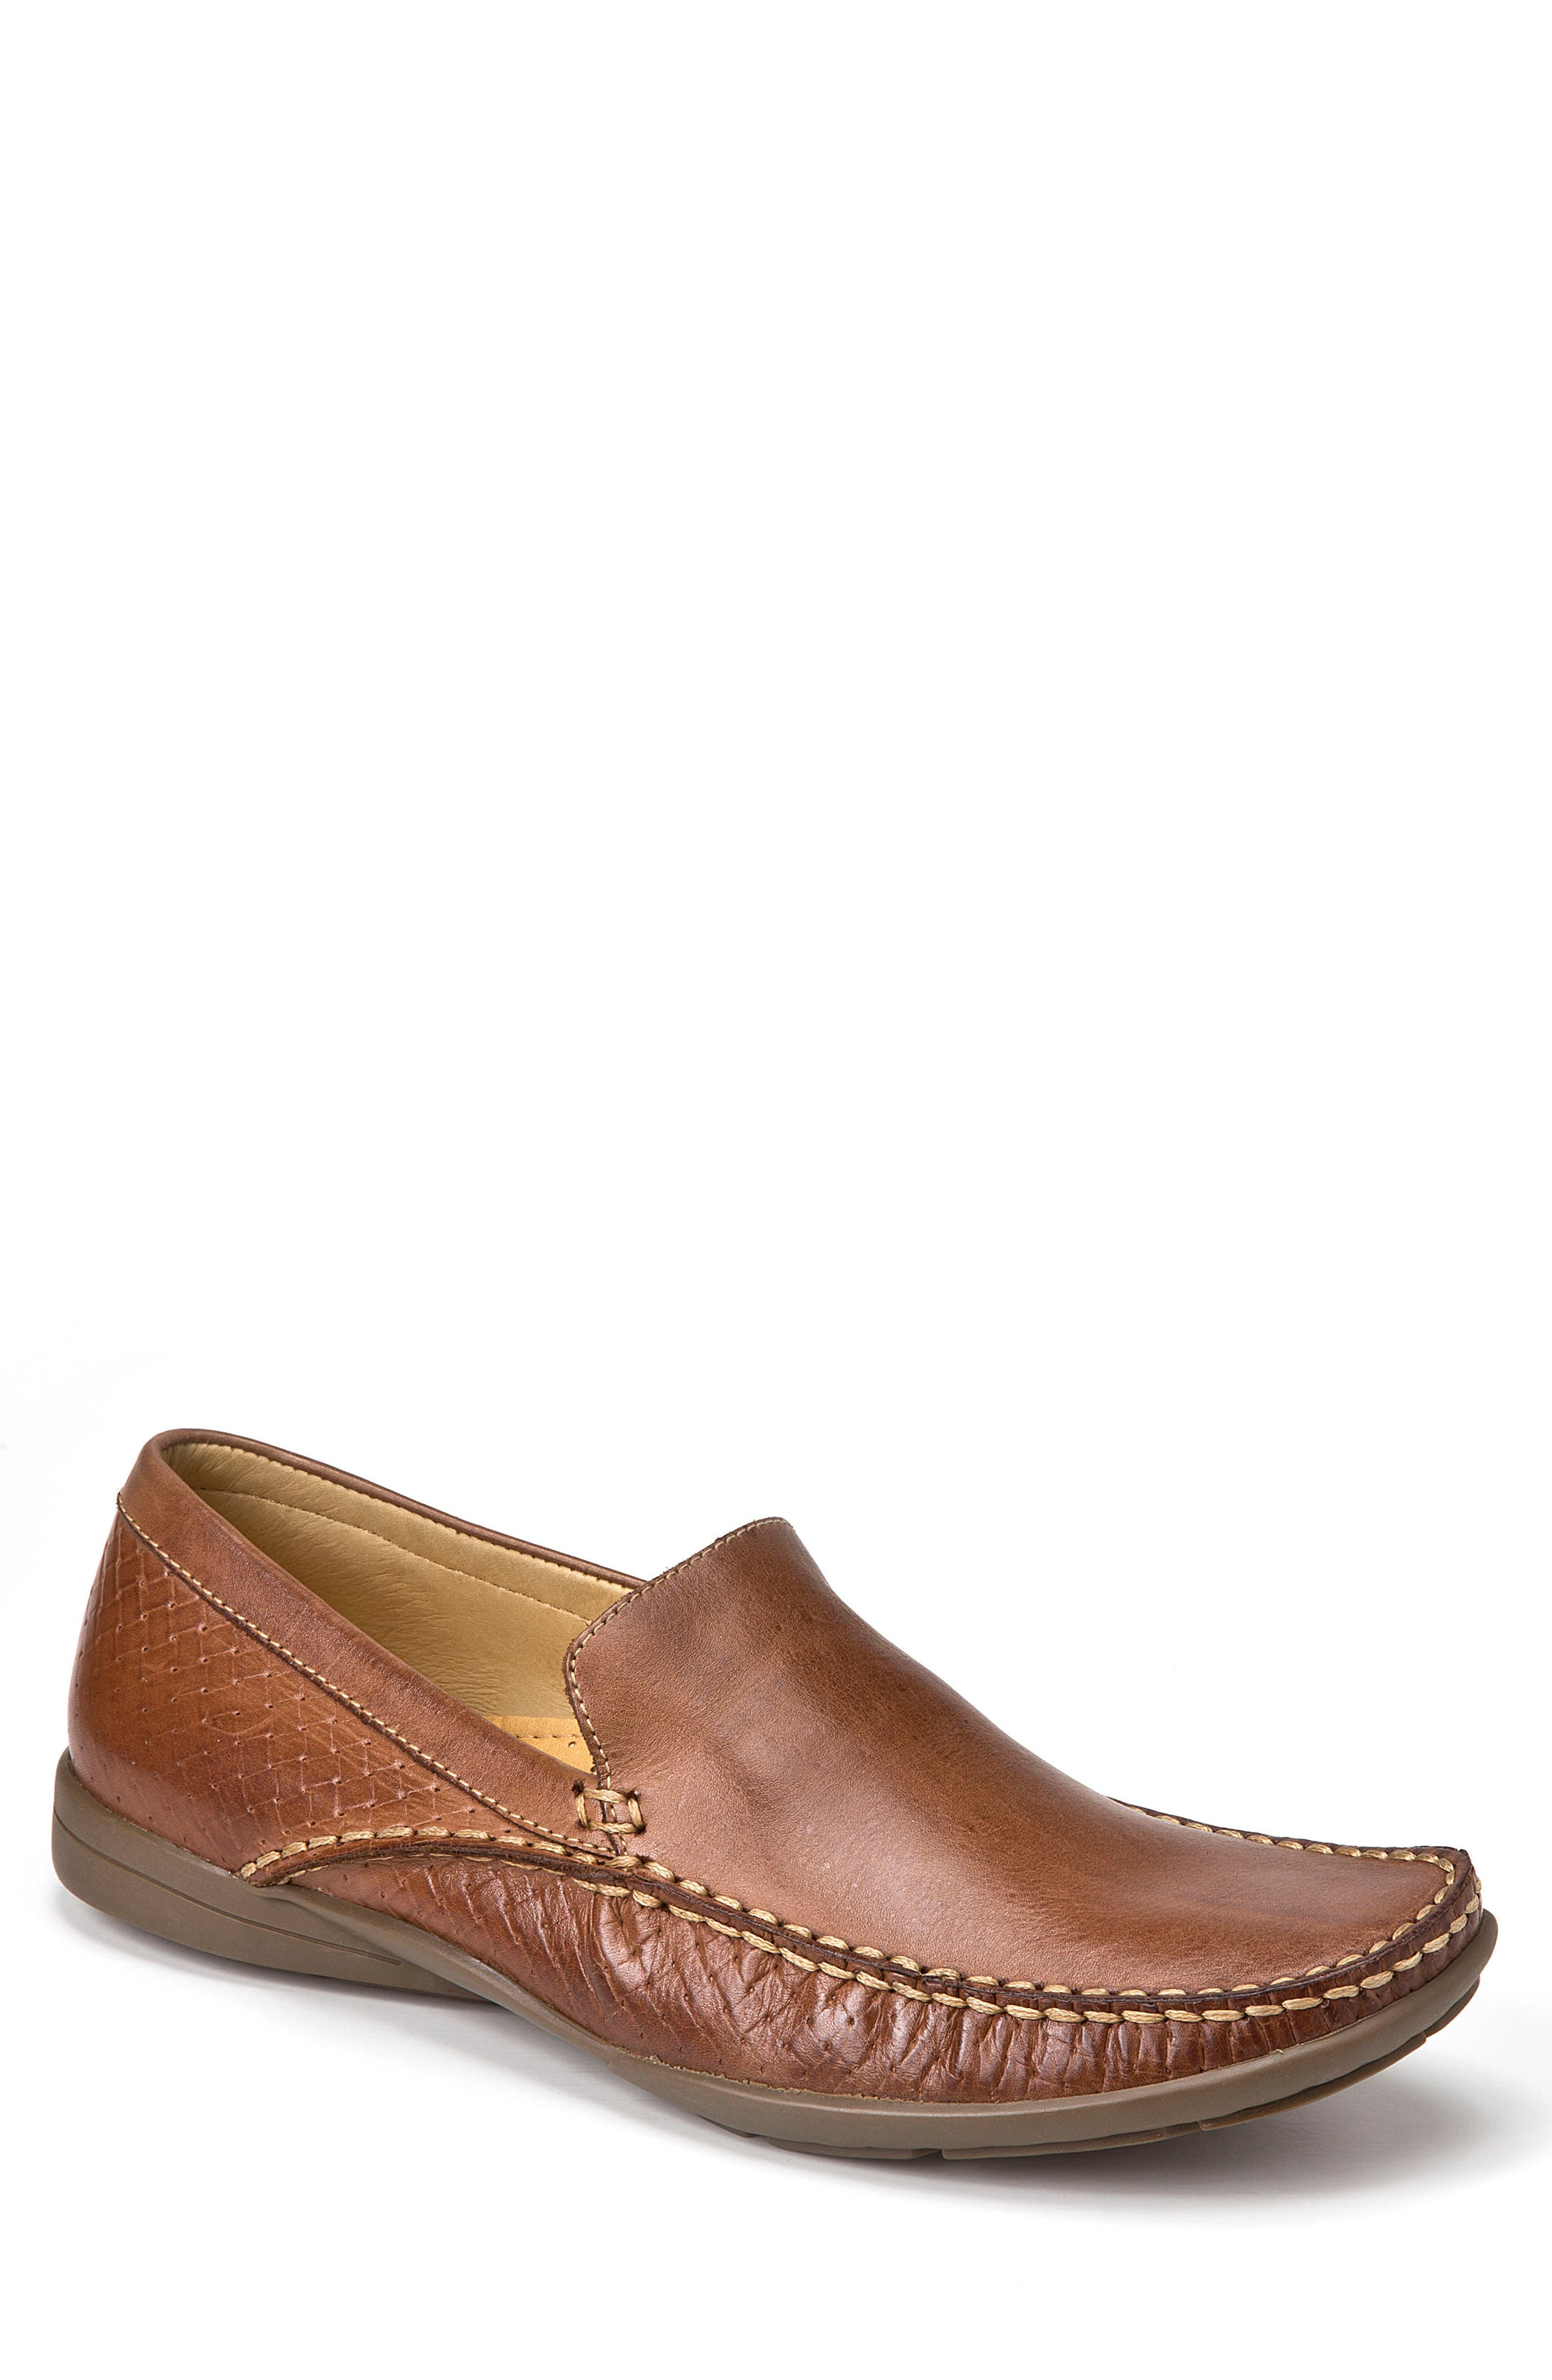 Dudley Moc Toe Loafer,                         Main,                         color, Tan Leather